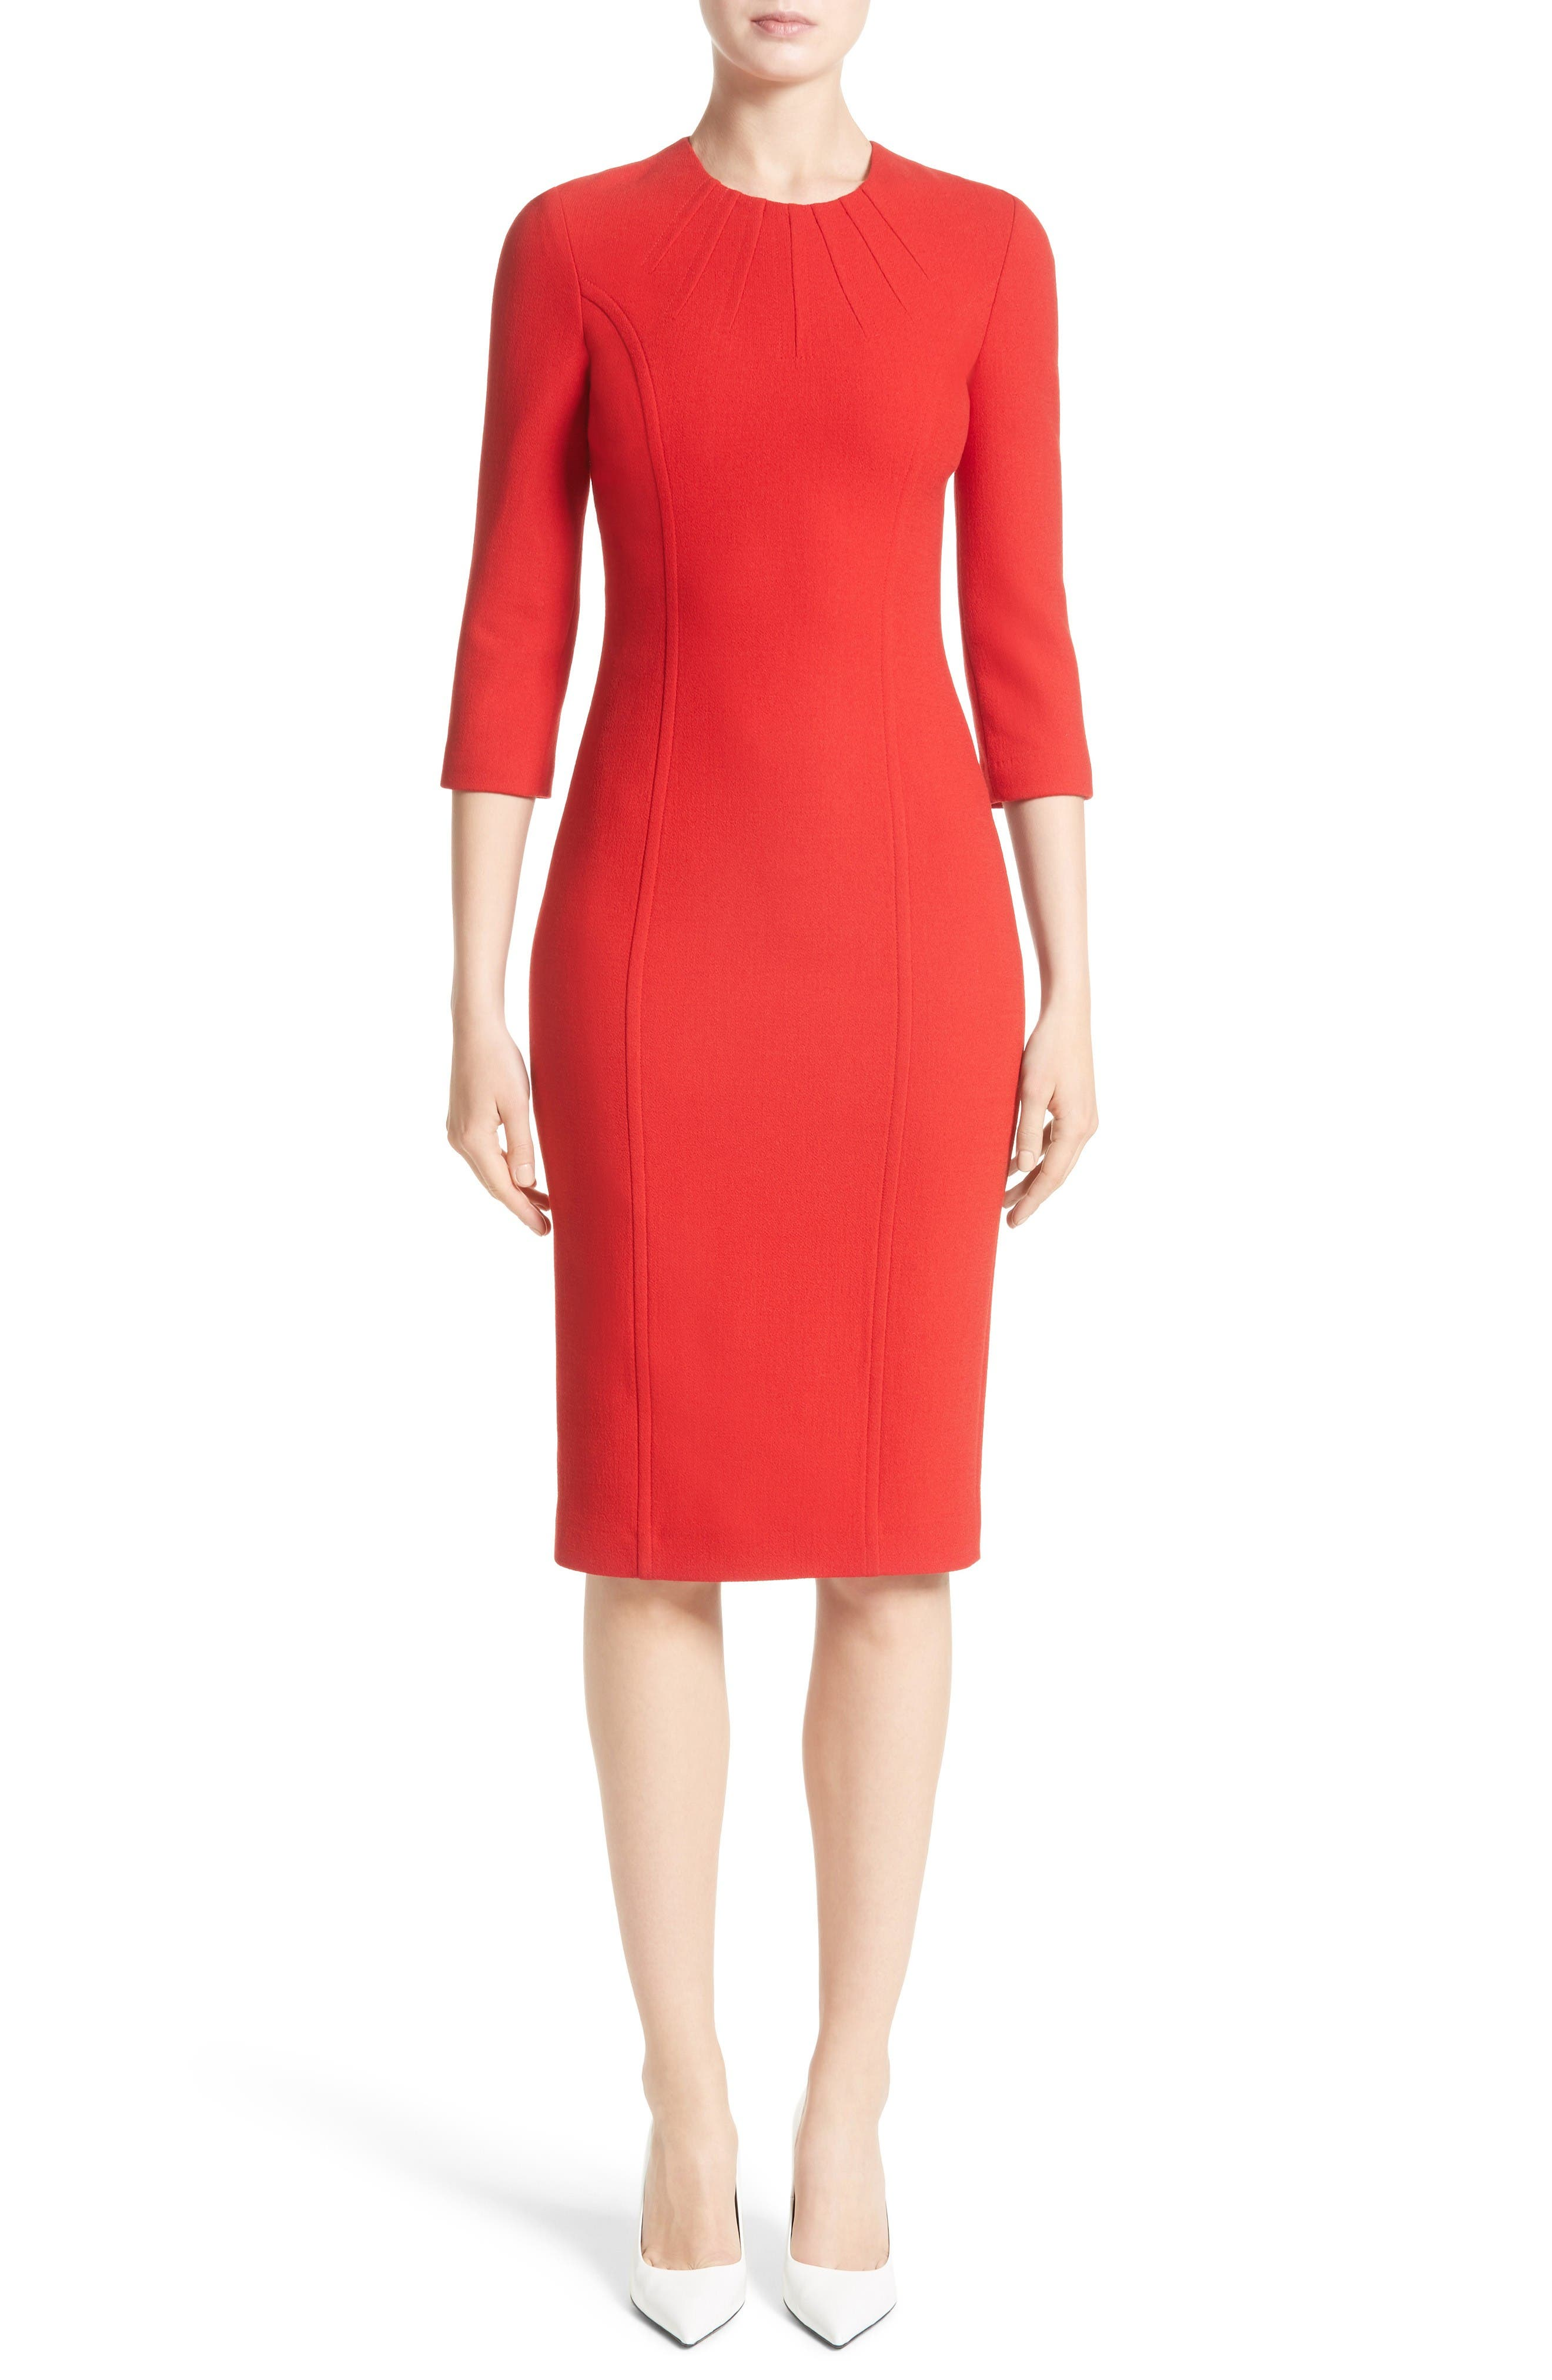 Michael Kors Stretch Wool Bouclé Sheath Dress